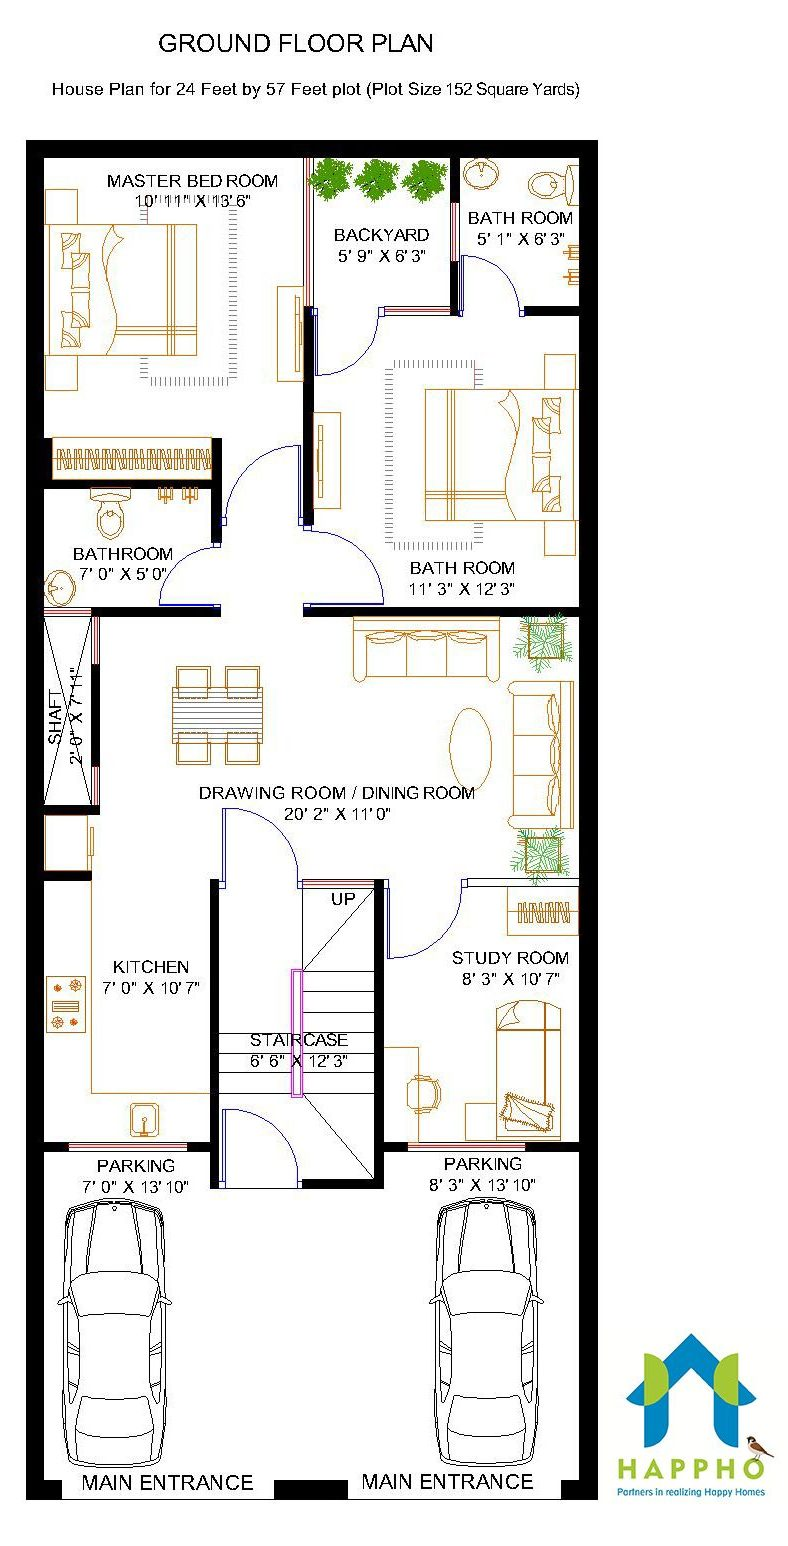 2-BHK Floor Plan for 24 X 57 Feet plot (1368 Square Feet) on kerala 3 bedroom house plans, villa house plans, contemporary house plans, 40 x 60 home plans, 40x50 metal building house plans, dreams house plans, 30 x 40 house plans, east facing house plans, feng shui house plans, art house plans, love house plans, construction house plans, 40x60 metal garage floor plans, exterior house plans, sq ft. house plans, blueprint construction plans, living off the grid house plans, small 3-bedroom duplex house plans, yoga house plans,